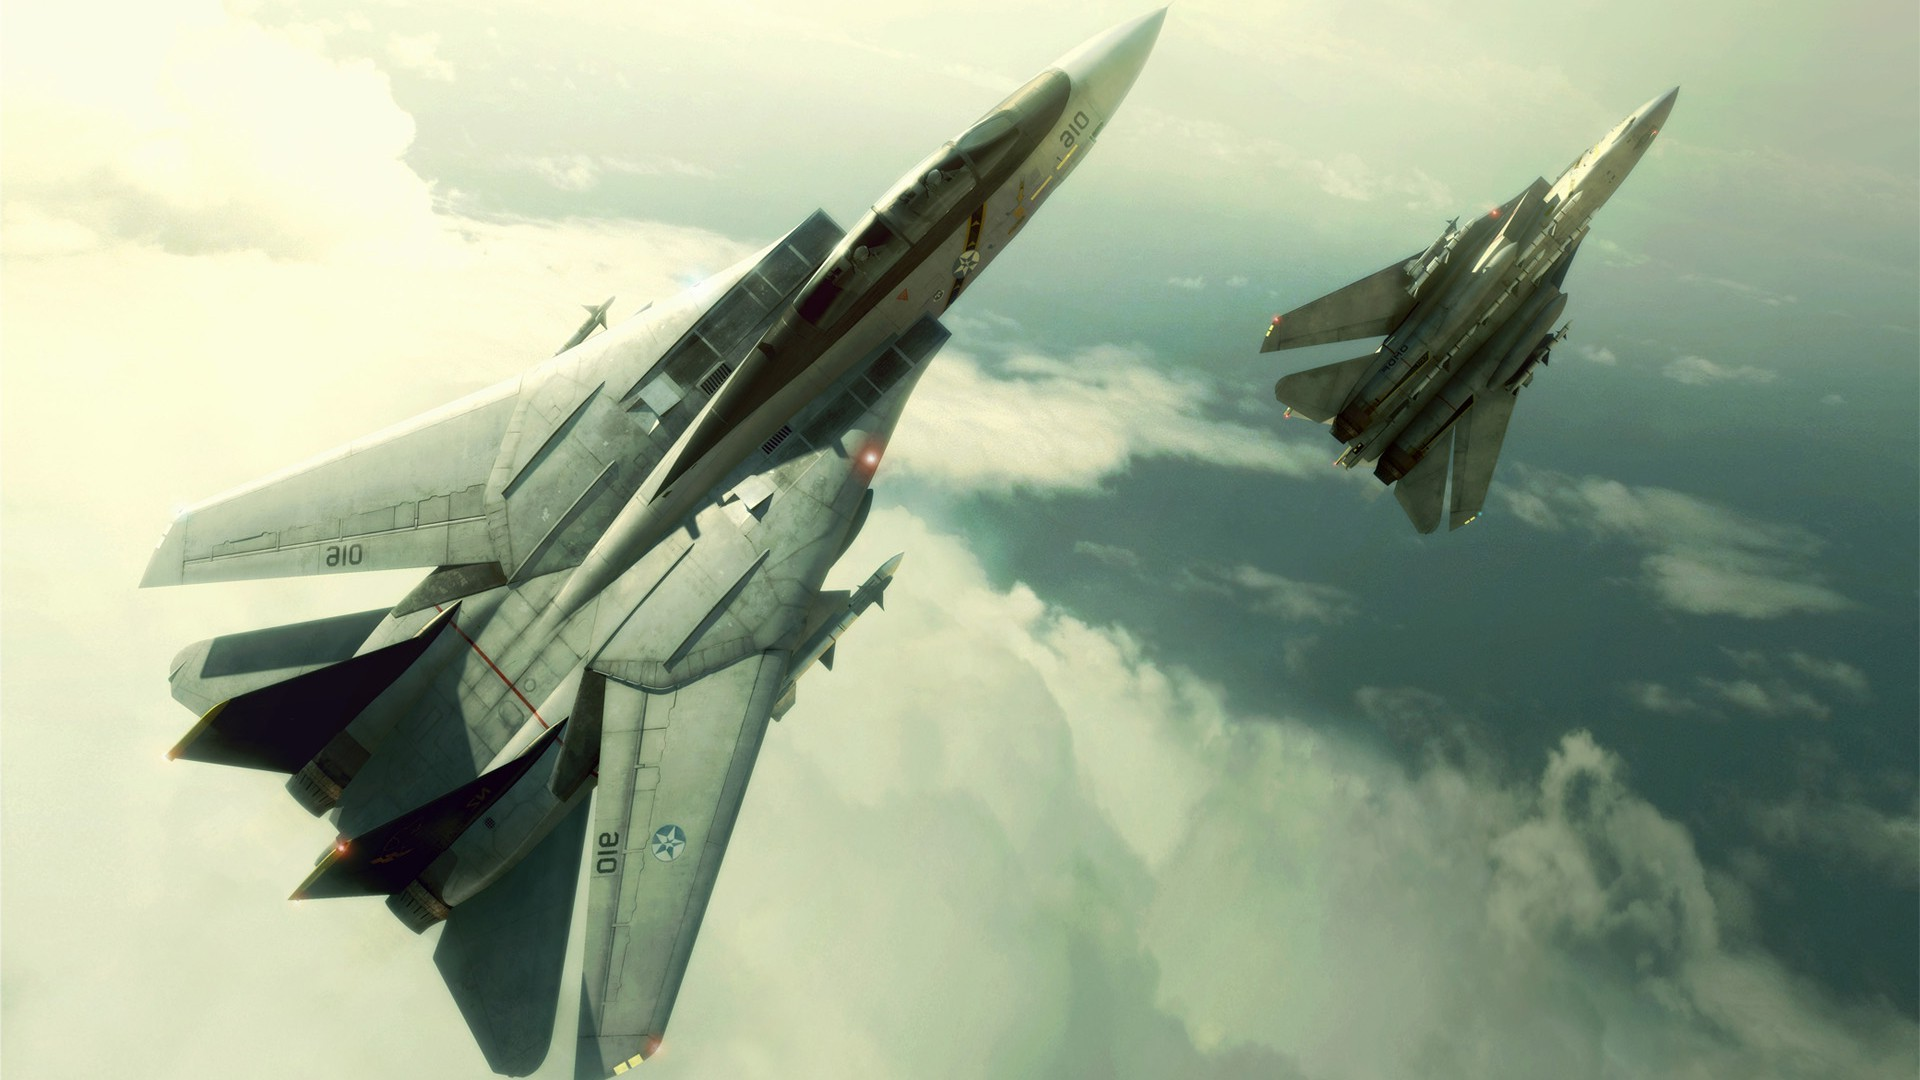 1920x1080 Grumman F-14 Tomcat Wallpapers